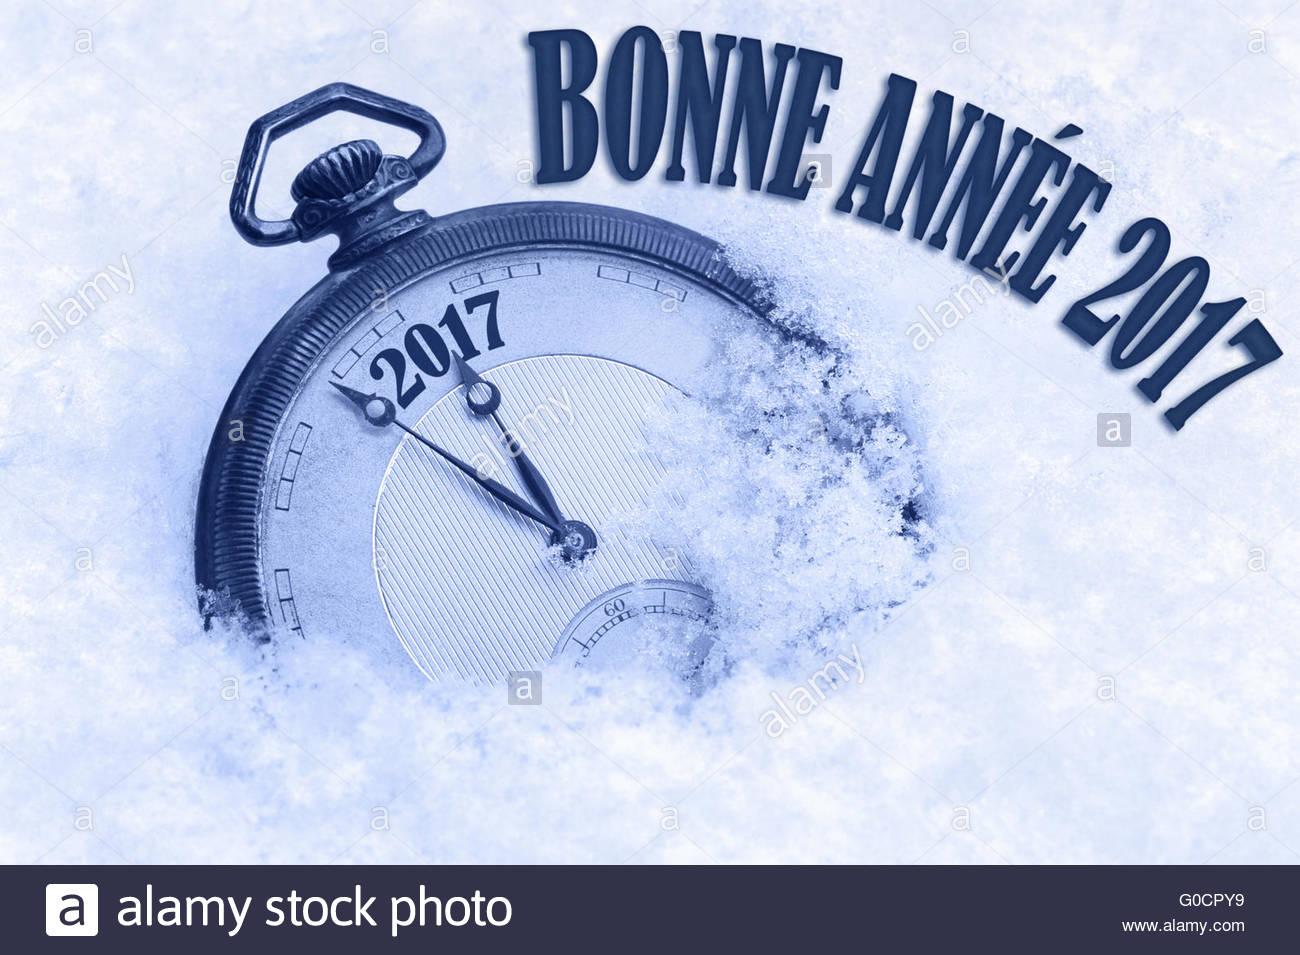 bonne annee happy new year 2017 greeting in french language text greeting card 2017